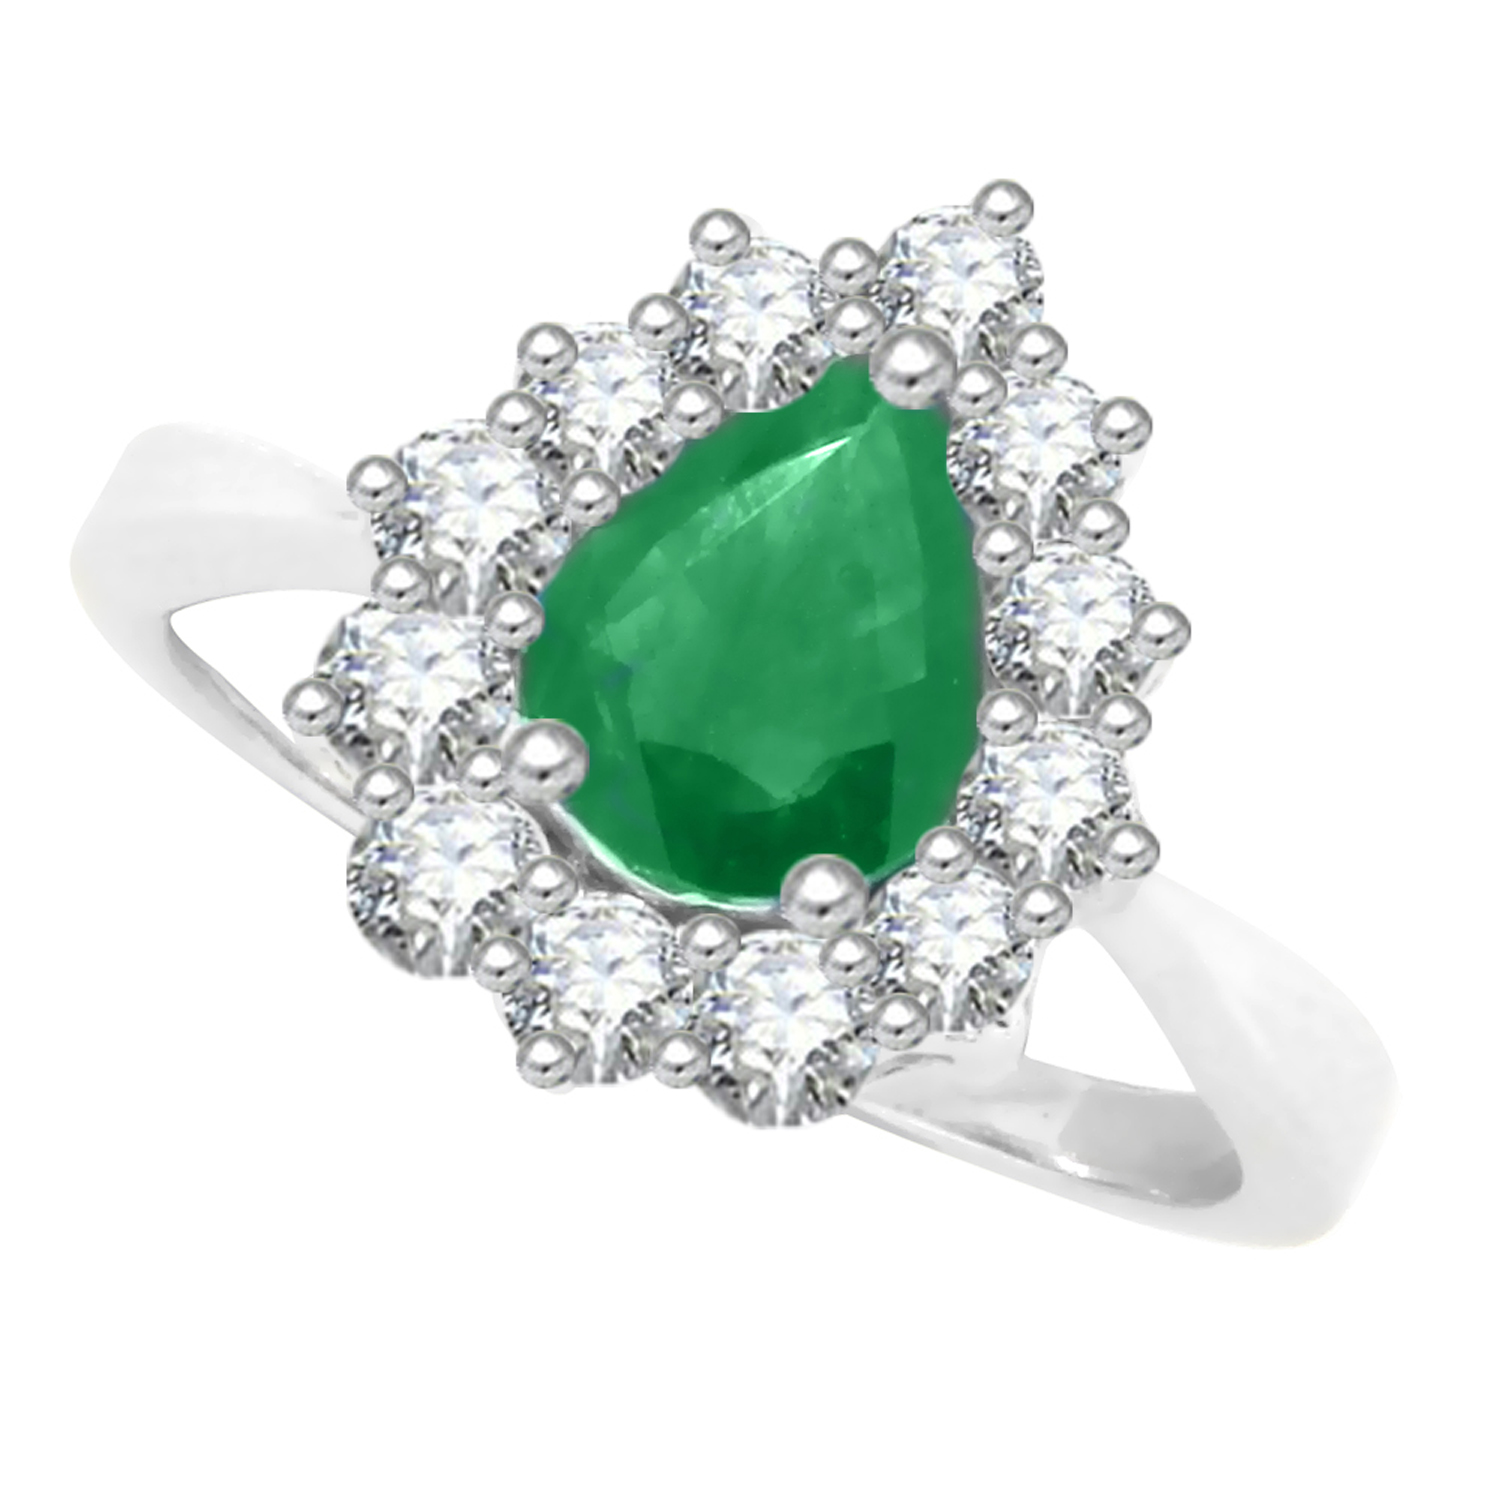 Mytreasurez 1.66 ct. Pear Shaped Genuine Emerald and 0.62...